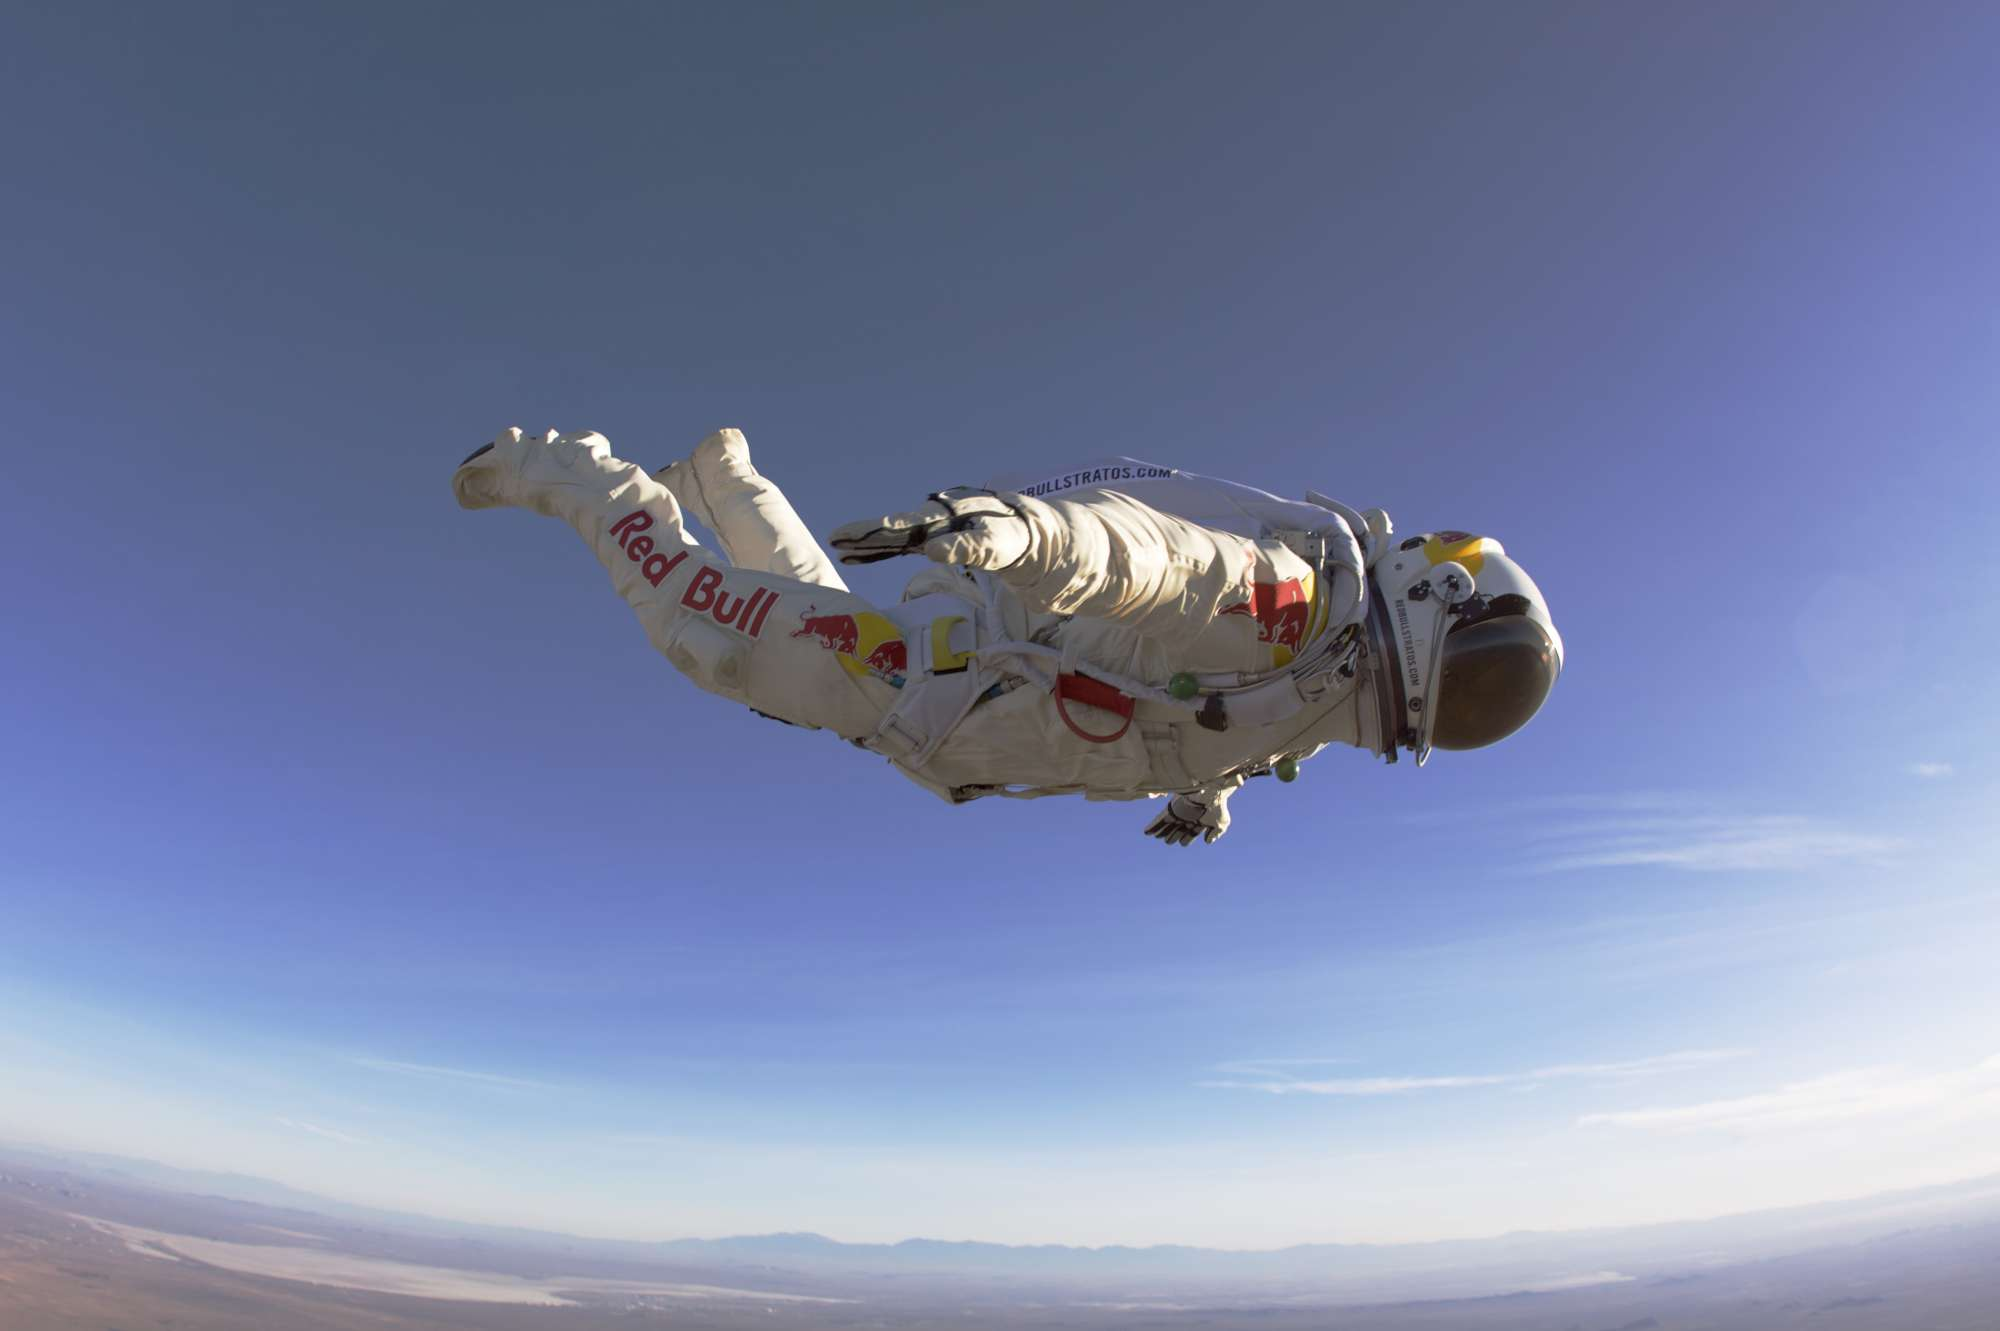 Skydiver Aims To Break The Sound Barrier, Not Die